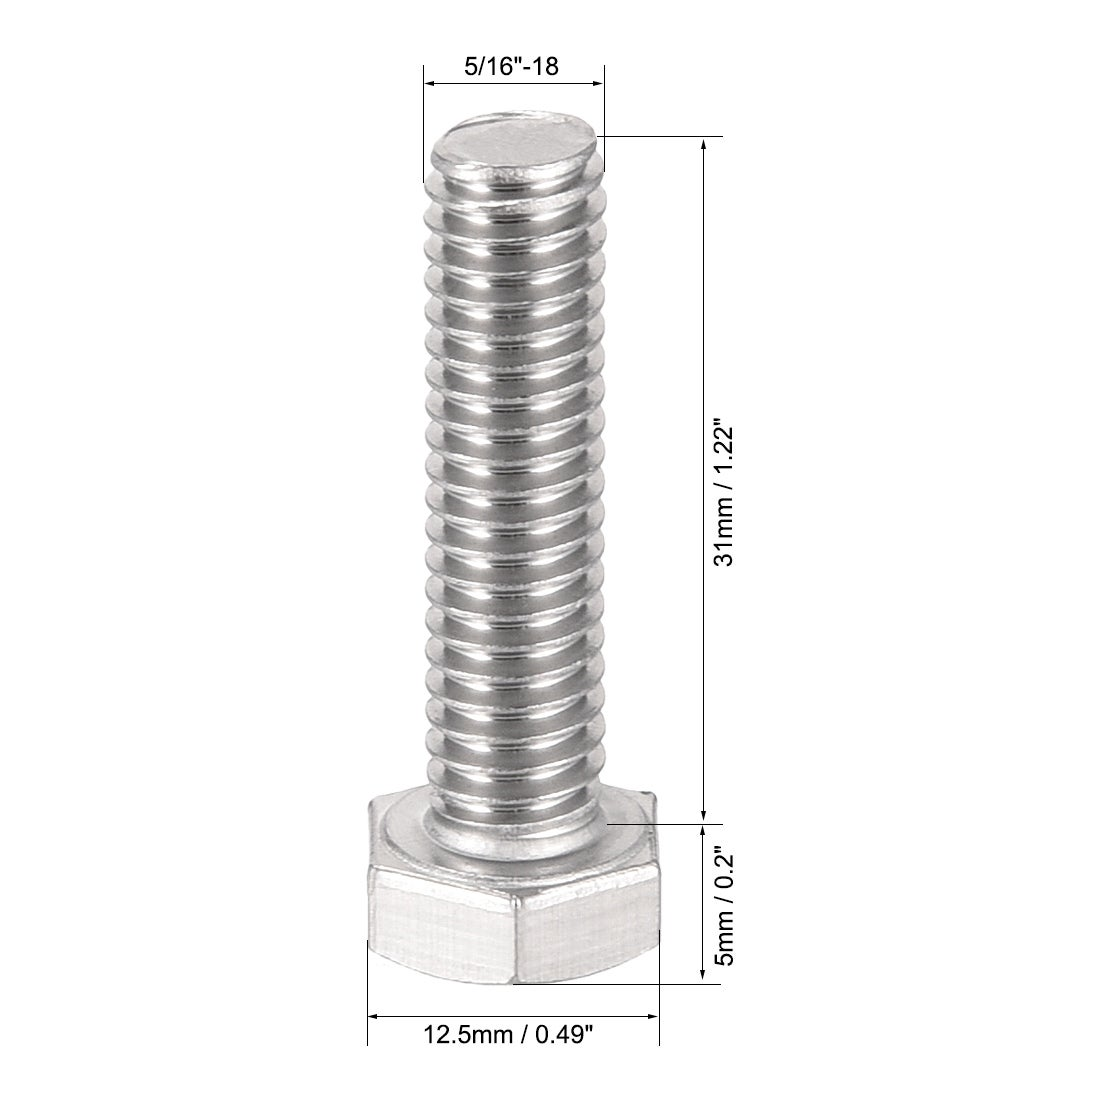 Thread Size 5//16-18 Thread Size 5//16-18 FastenerParts Steel Four-Arm Extended-Tip Thumb Screw